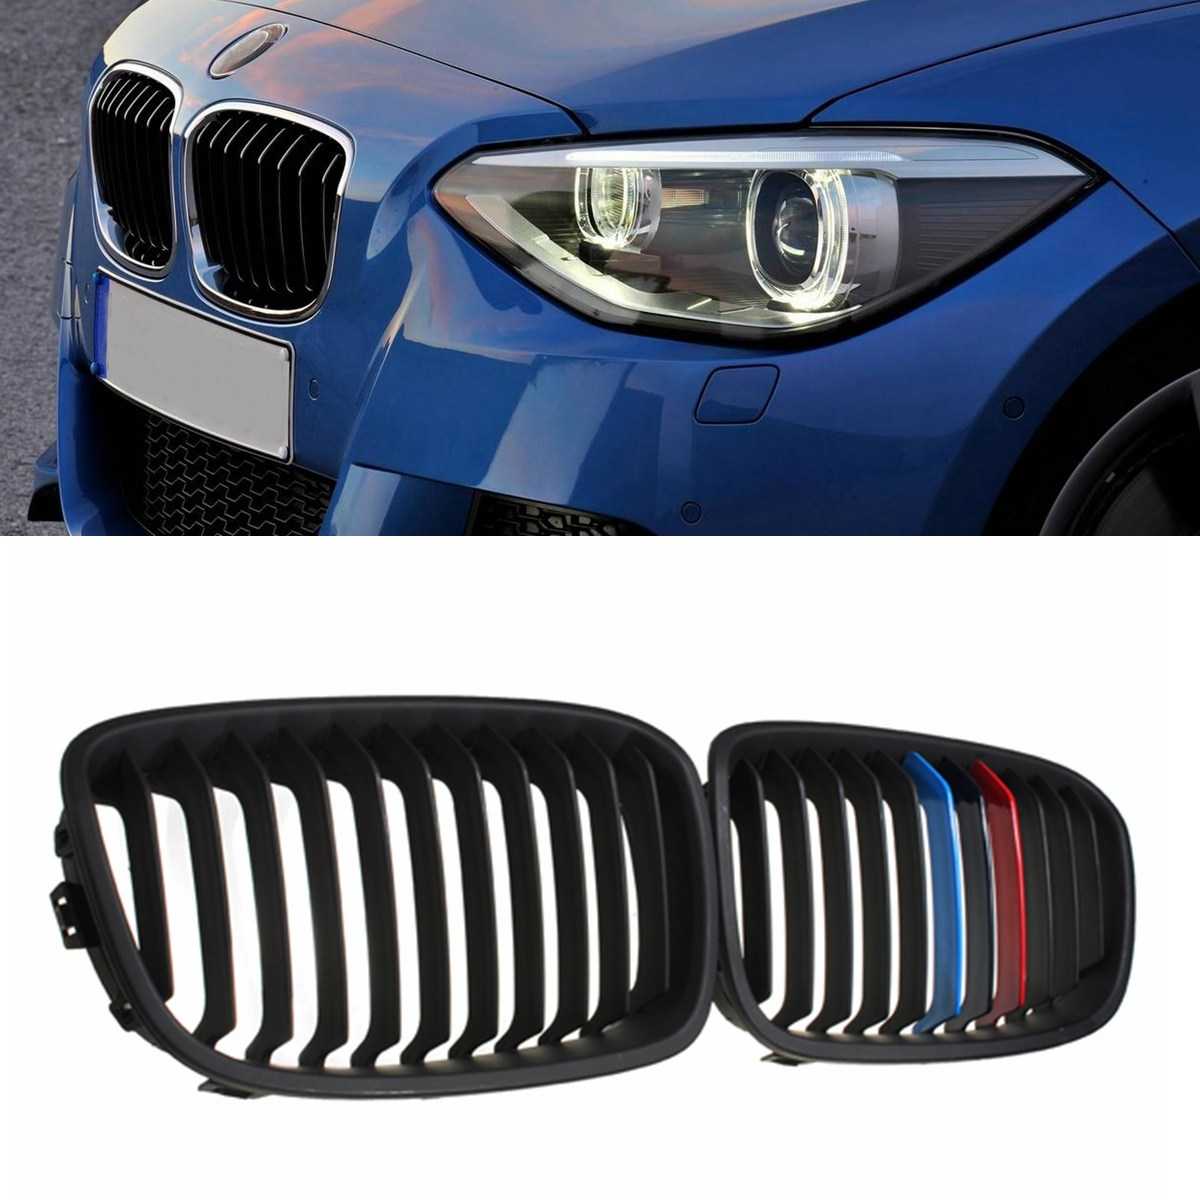 Pair M-Color Gloss/Matte Black Kidney Grille Grill For BMW F20 F21 1-SERIES 2011-ONWARDS gloss black front dual line grille grill for bmw f20 f21 1 series 118i 2010 2011 2012 2013 2014